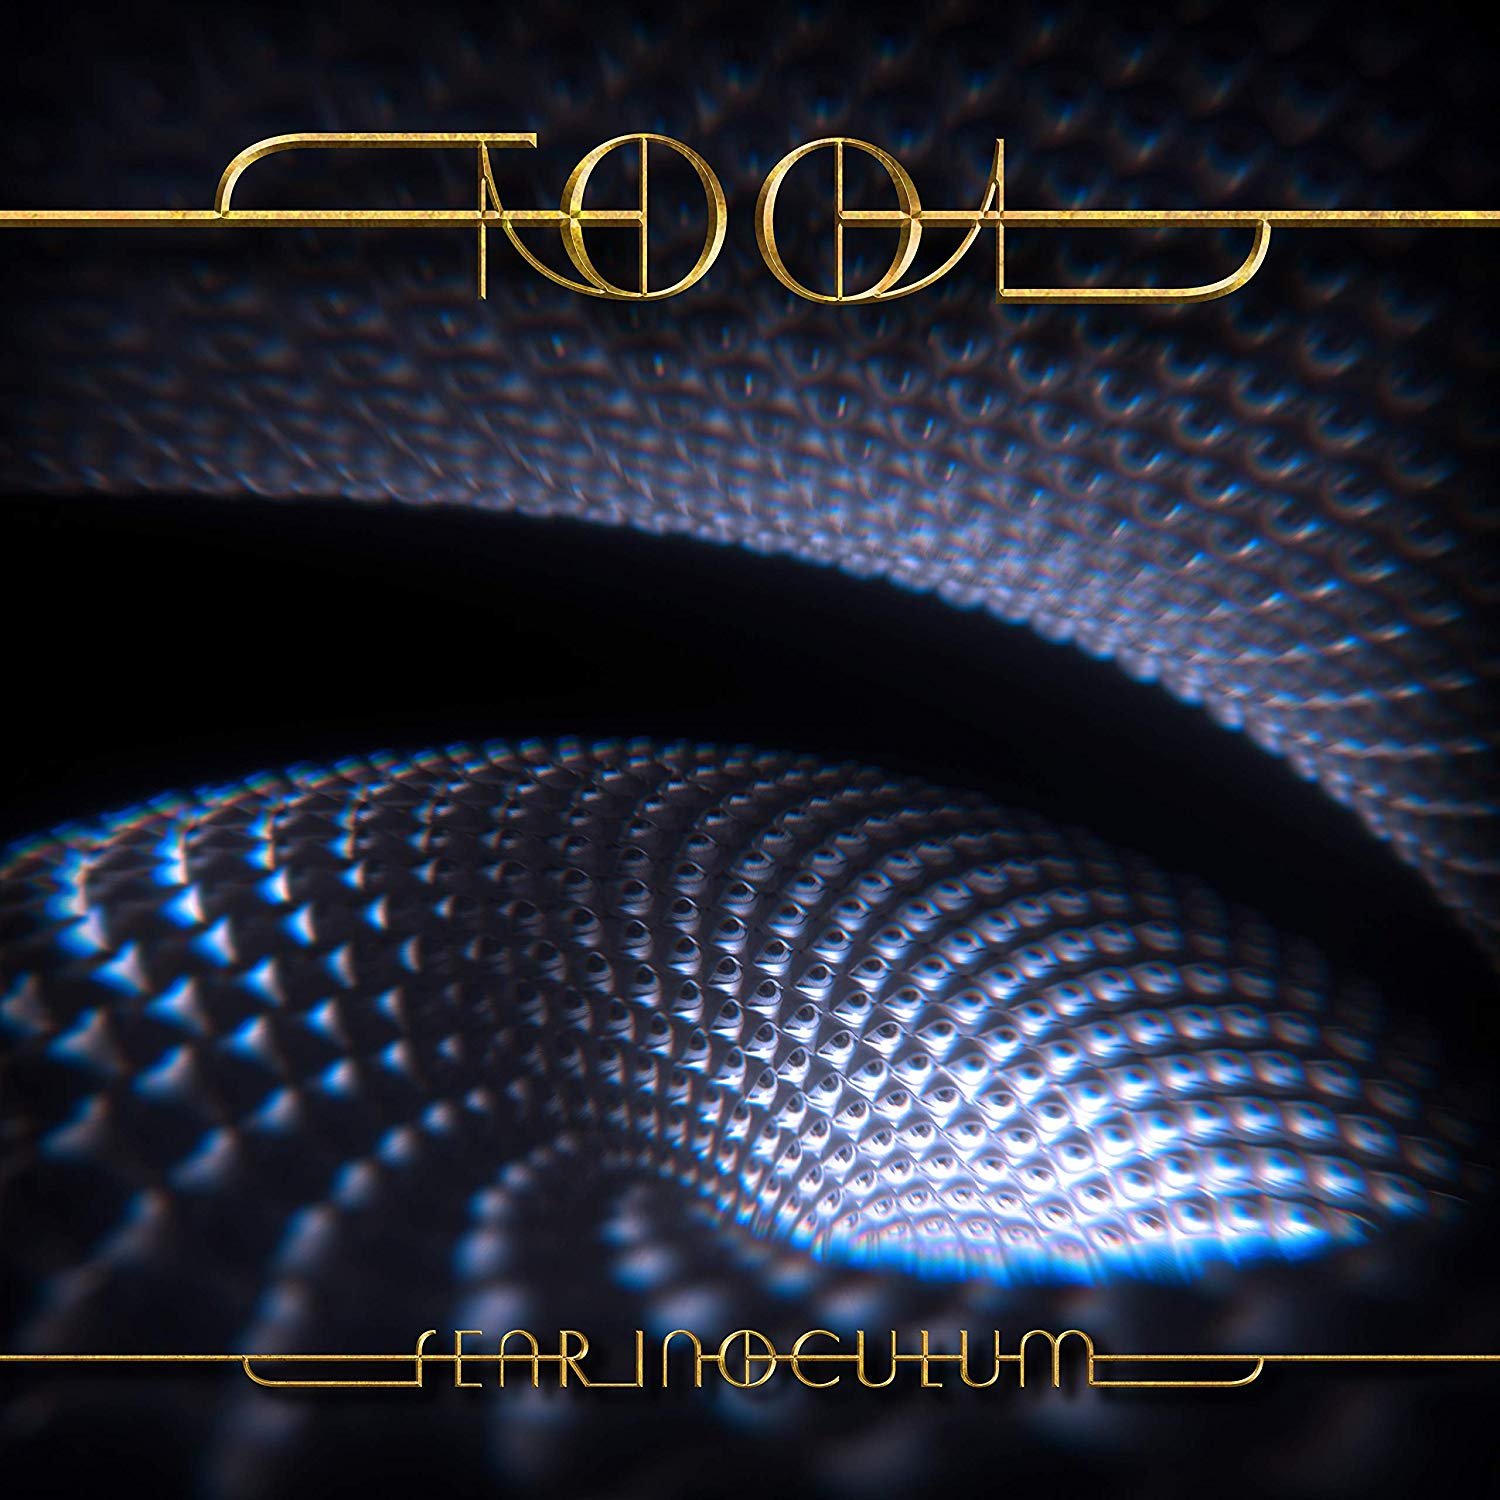 Tool - Fear Inoculum (Deluxe) [CD] (limited, Tri-fold Soft Pack Video Brochure feat. CD, 4'' HD rechargeable screen w/exclusive video footage, charging cable, 2-watt speaker, 30pg book, ) (Vinyl) - Urban Vinyl | Records, Headphones, and more.